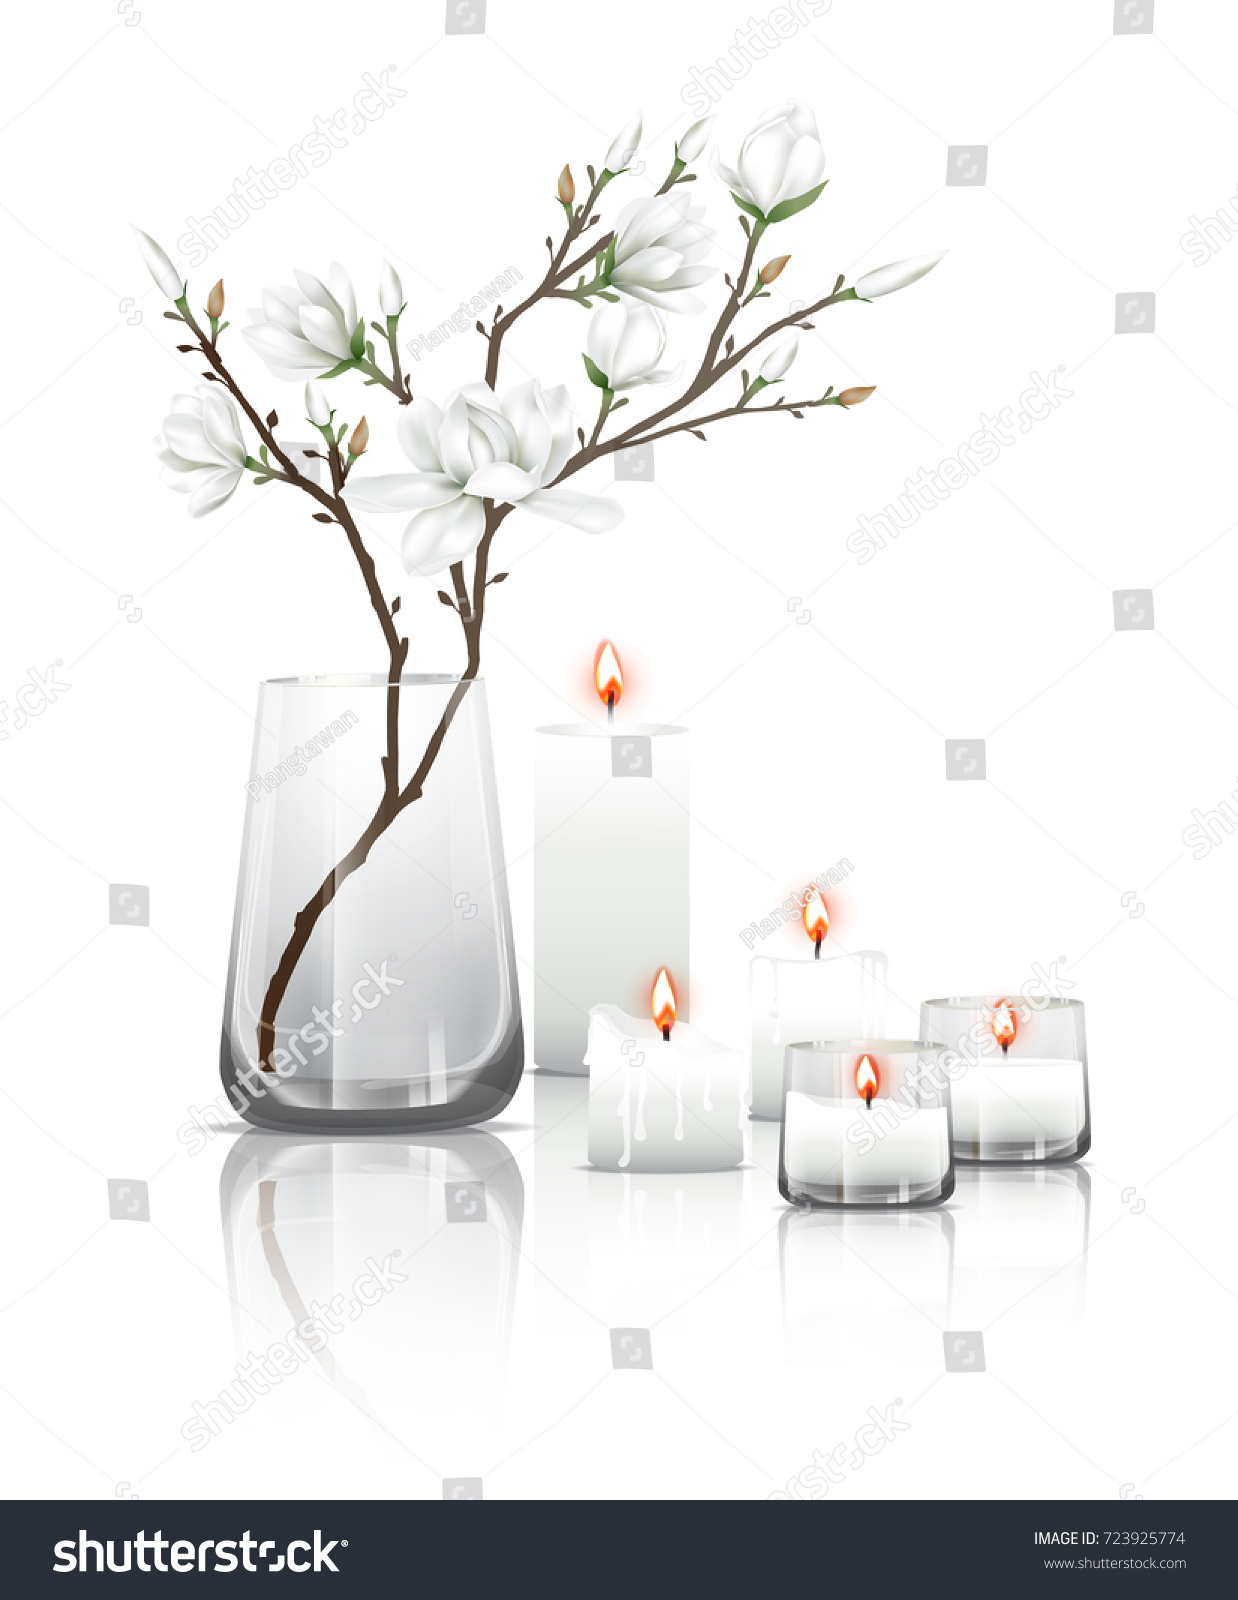 Branches white magnolia flowers clear glass stock vector 723925774 branches of white magnolia flowers in a clear glass and burning candles with reflection on the sciox Images